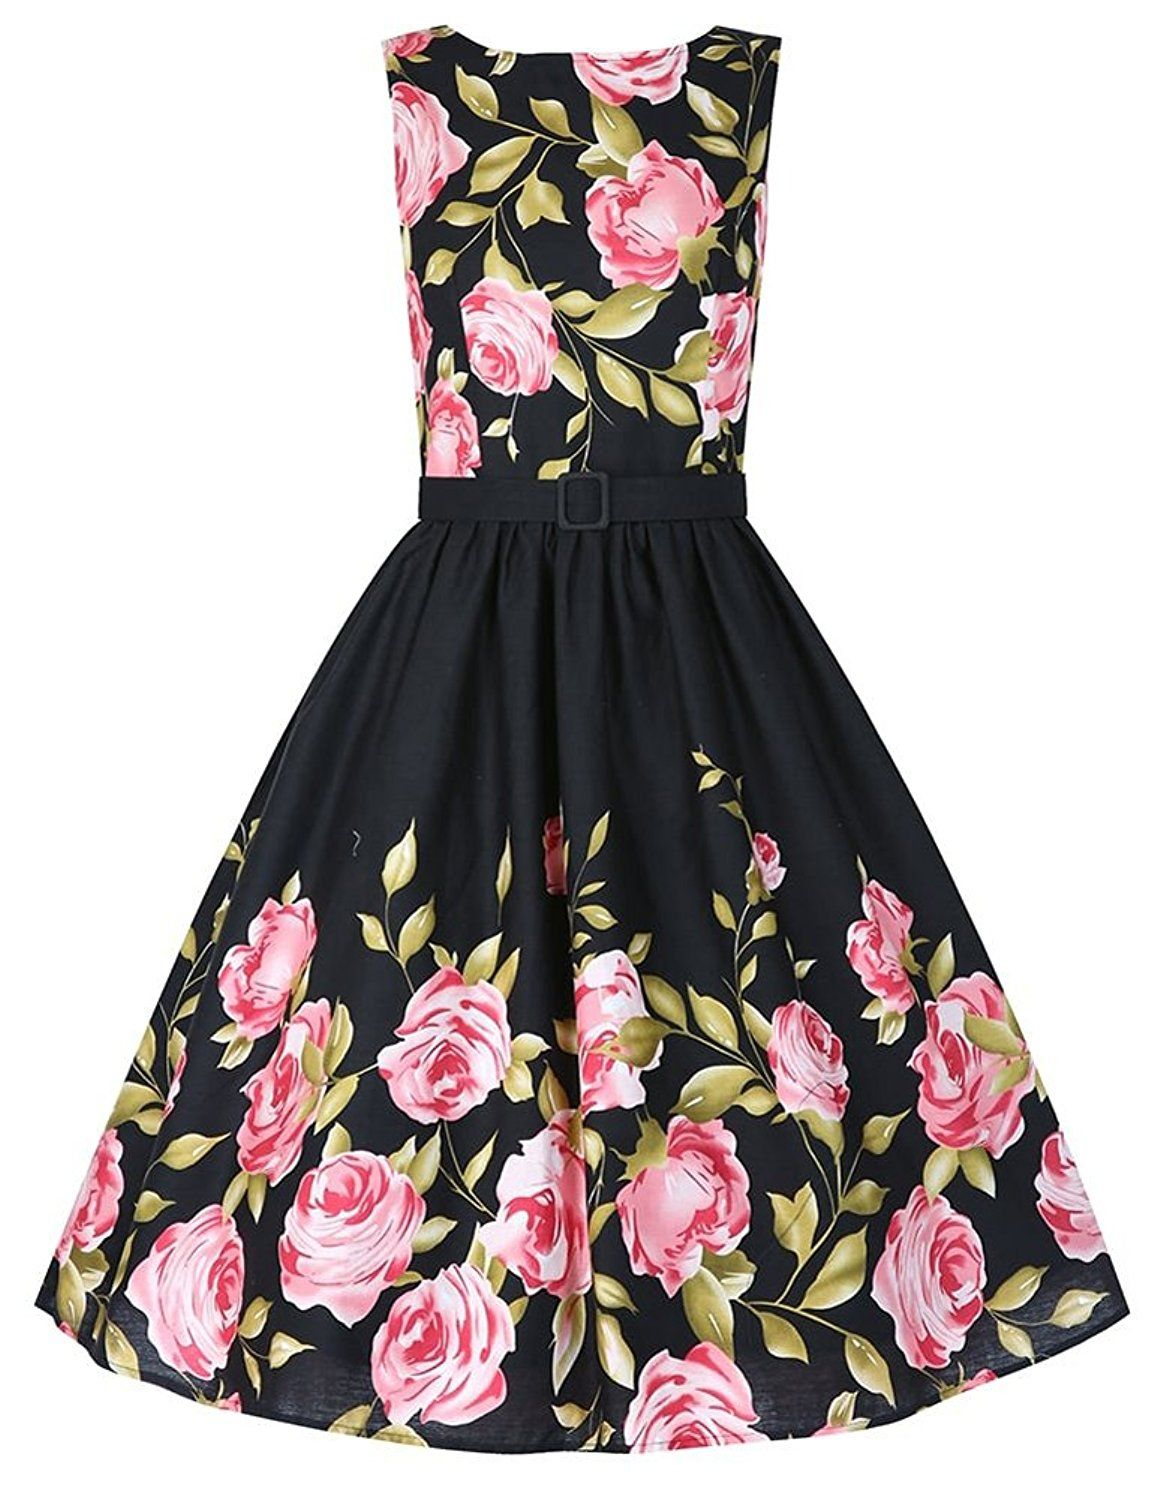 Eudolah Women's Romatic Rose Flower Printed Vintage Sash Retro Party Dress ** Check out this great image  : cocktail dresses